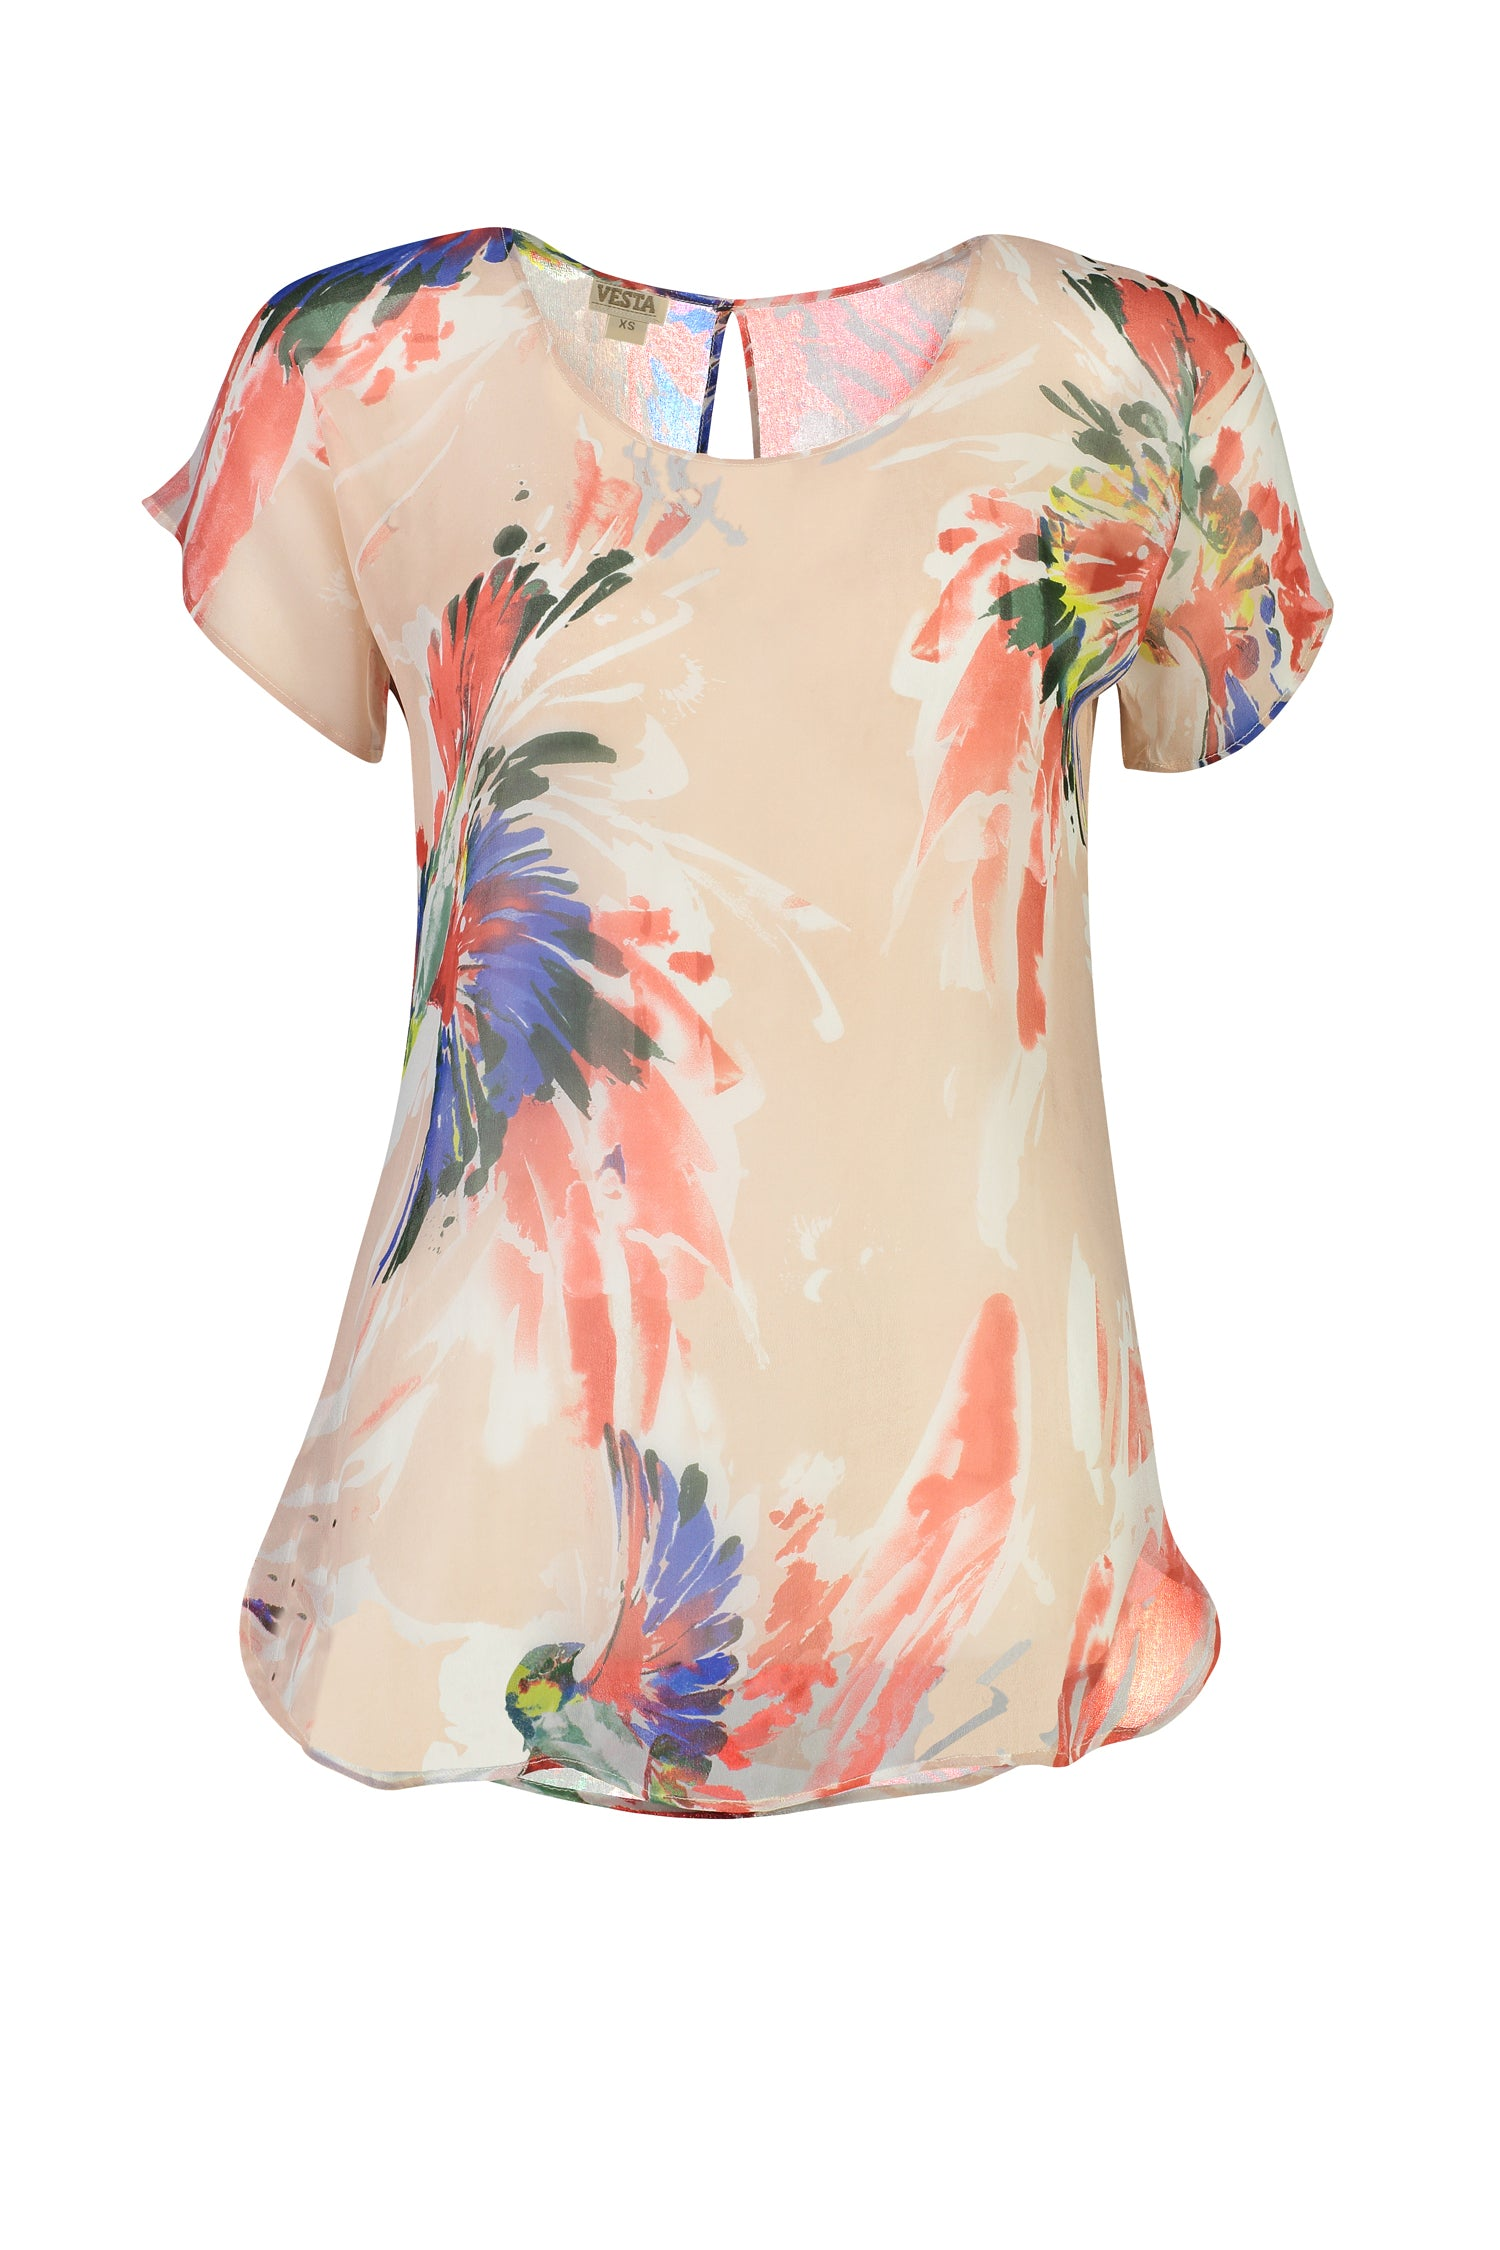 Vesta Silk Tee - Firebird was $188 now $158